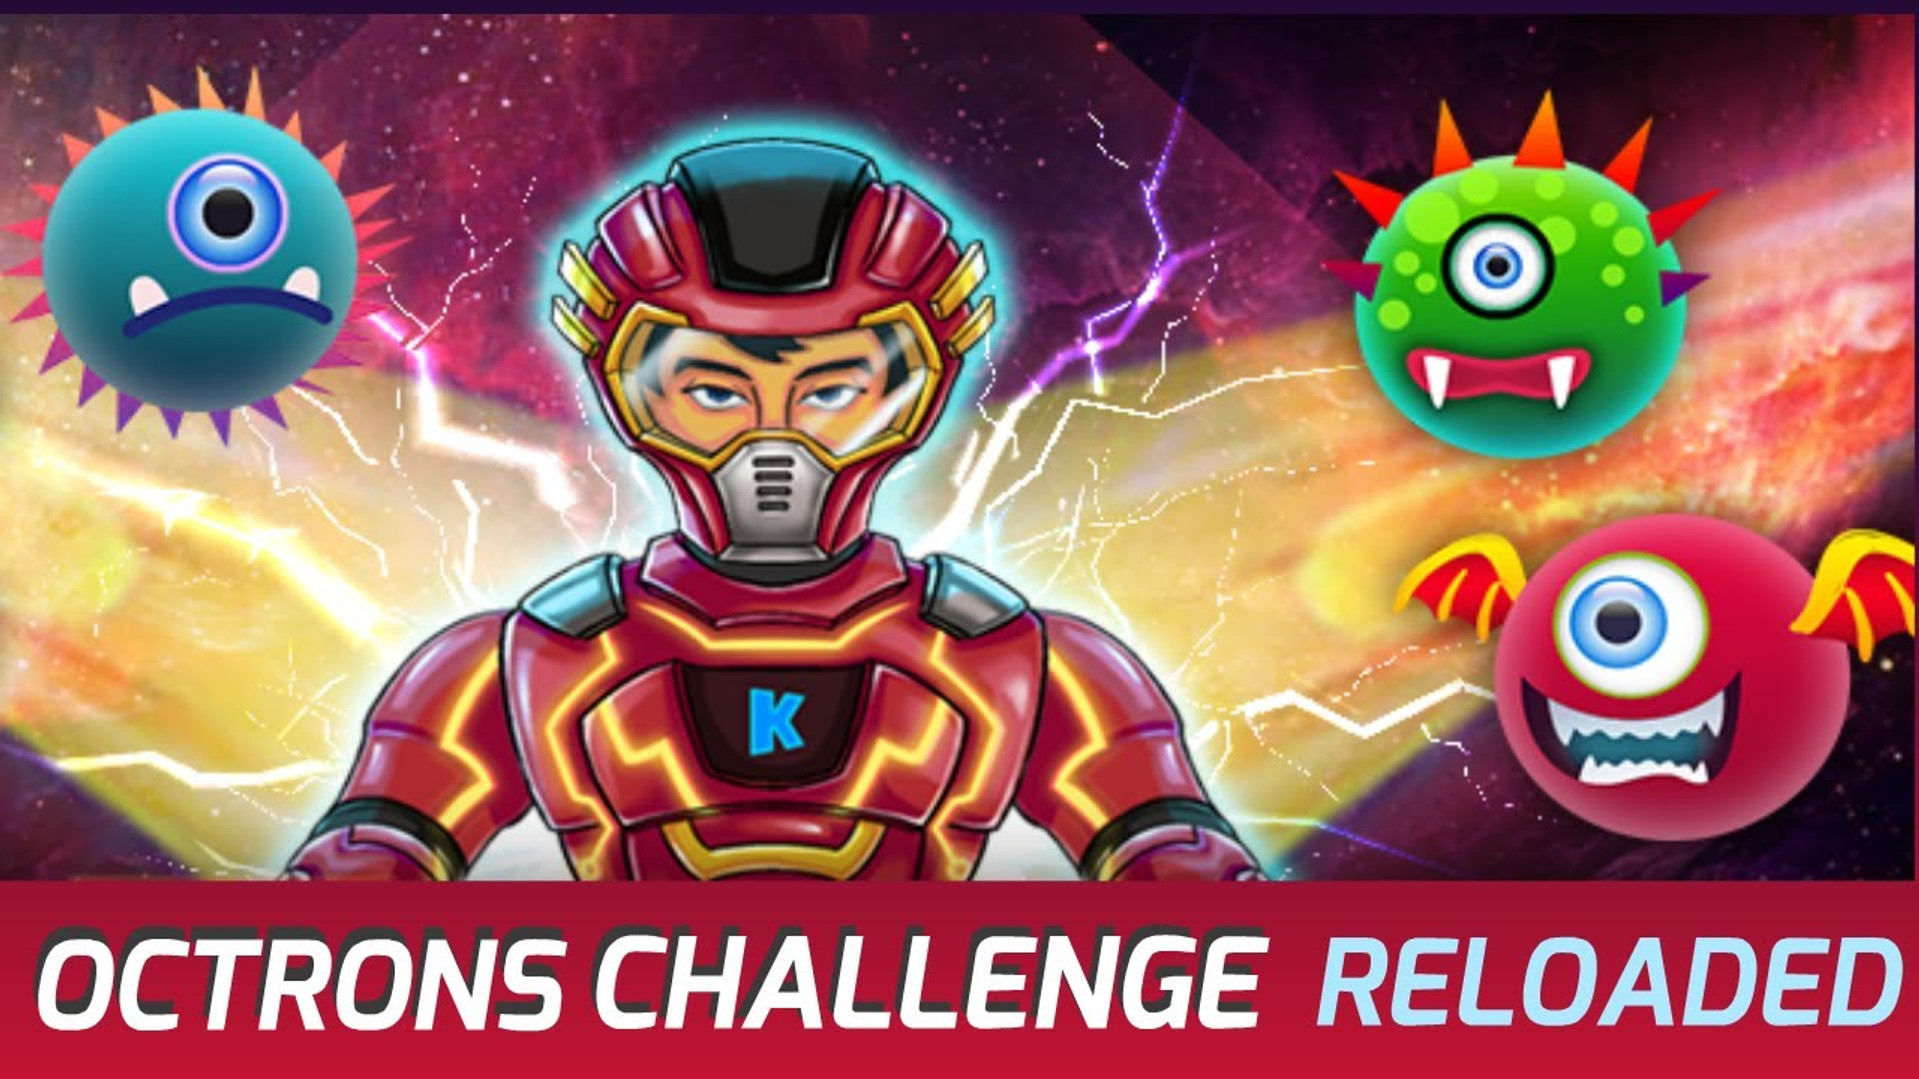 Octrons Challenge Reloaded , Mission New York Teaser Promo Video